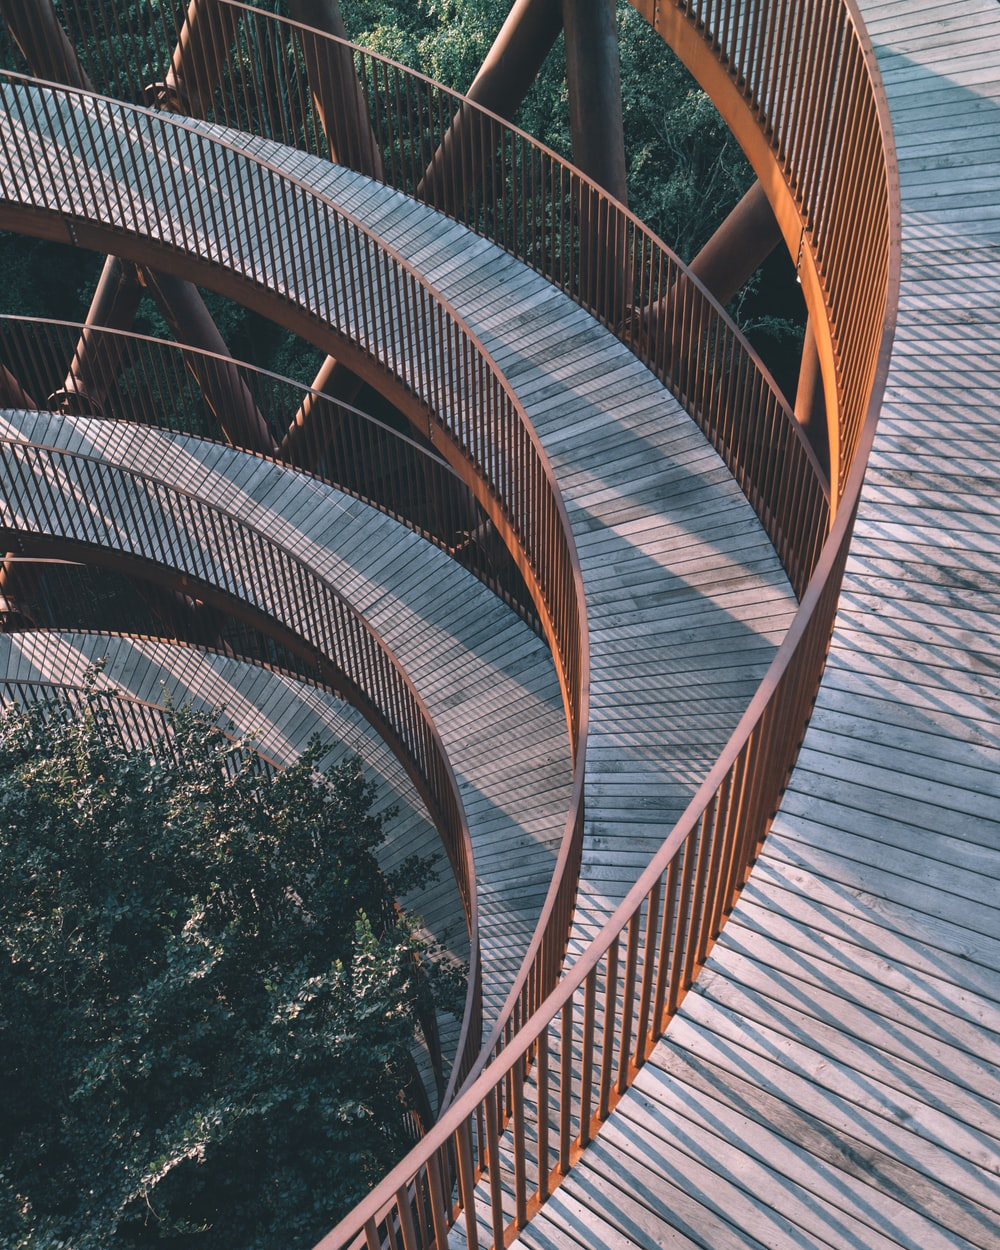 brown spiral staircase near green trees during daytime